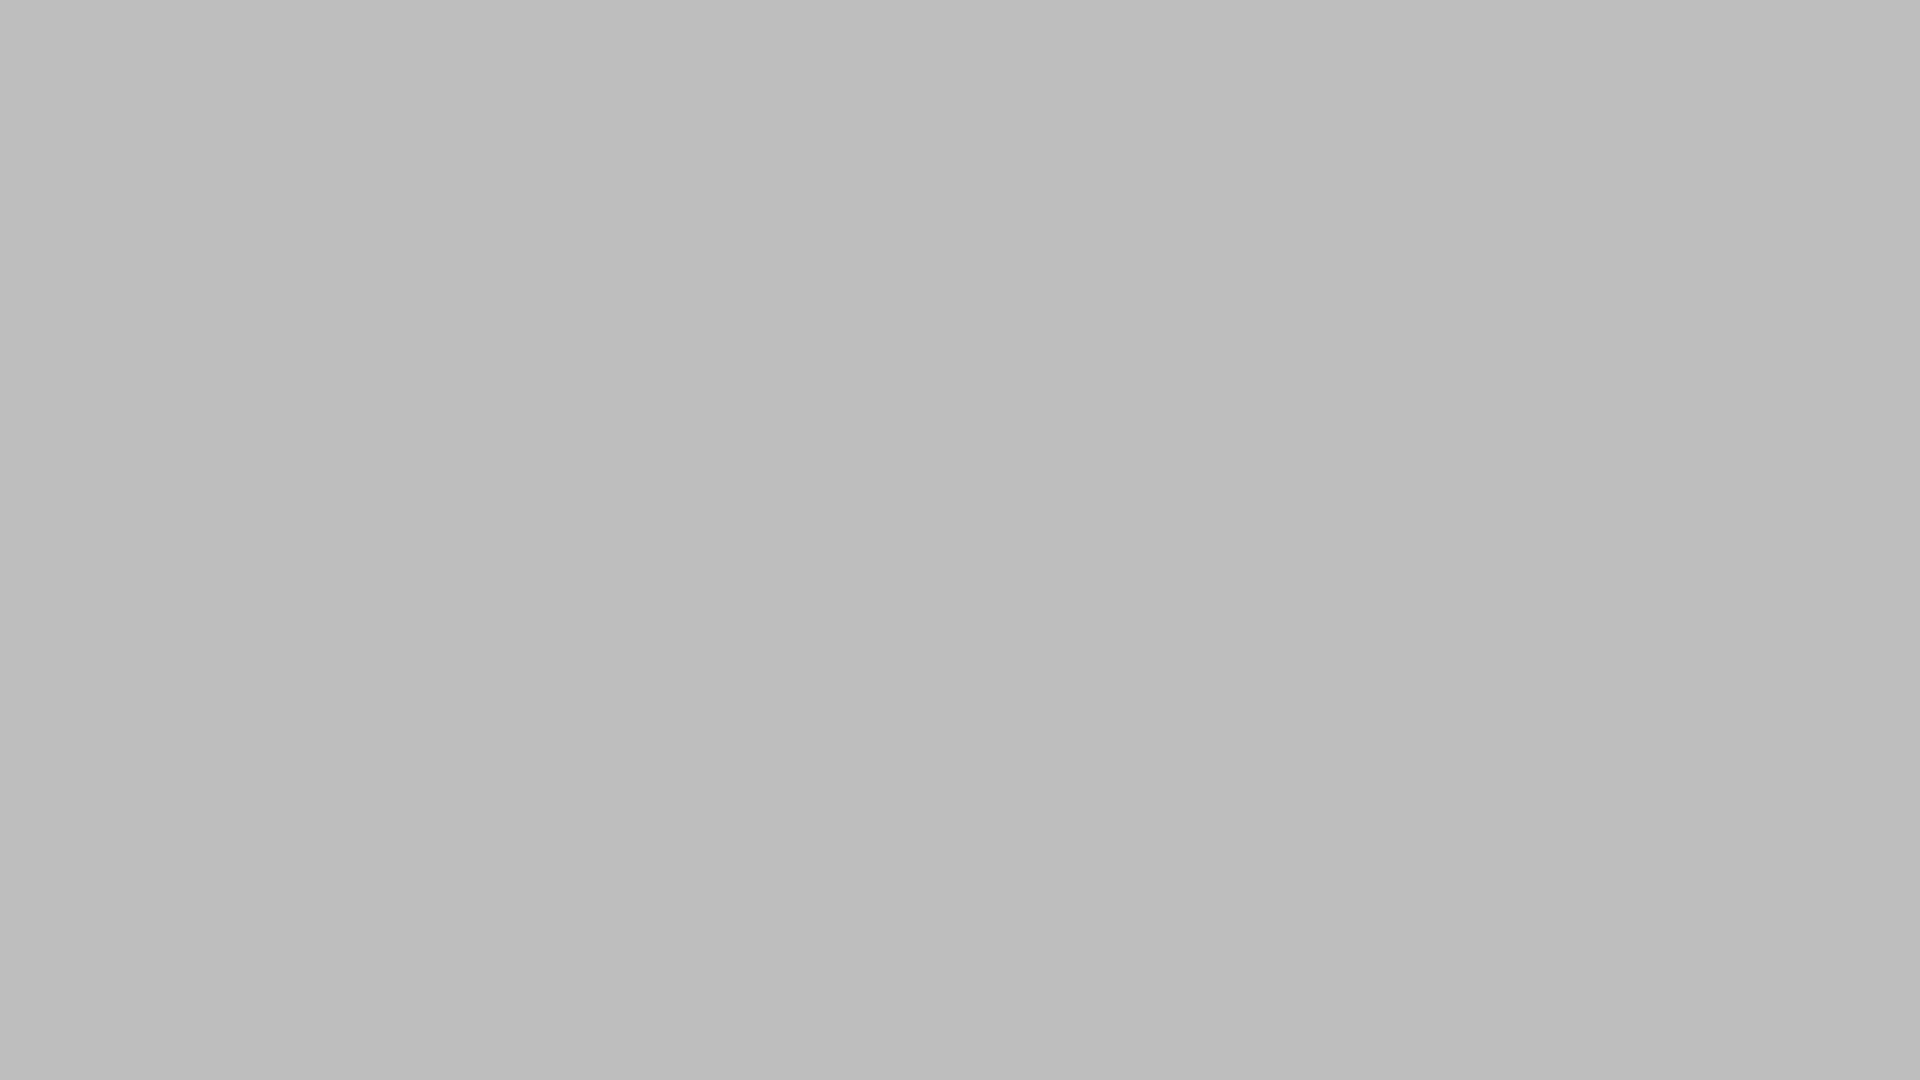 1920x1080 Gray X11 Gui Gray Solid Color Background